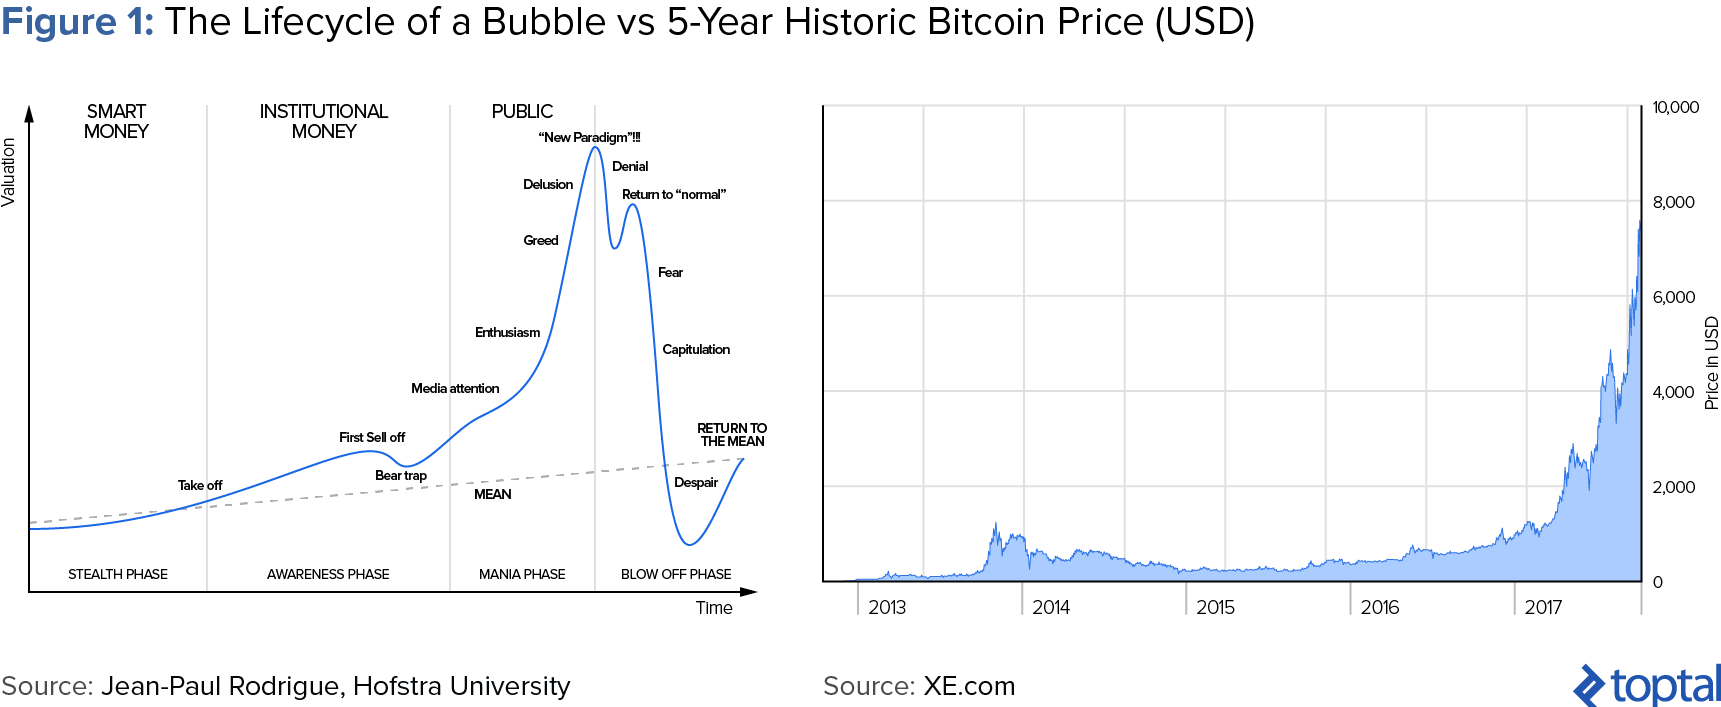 Figure 1: The Lifecycle of a Bubble vs. 5-year Historic Bitcoin Price (USD)